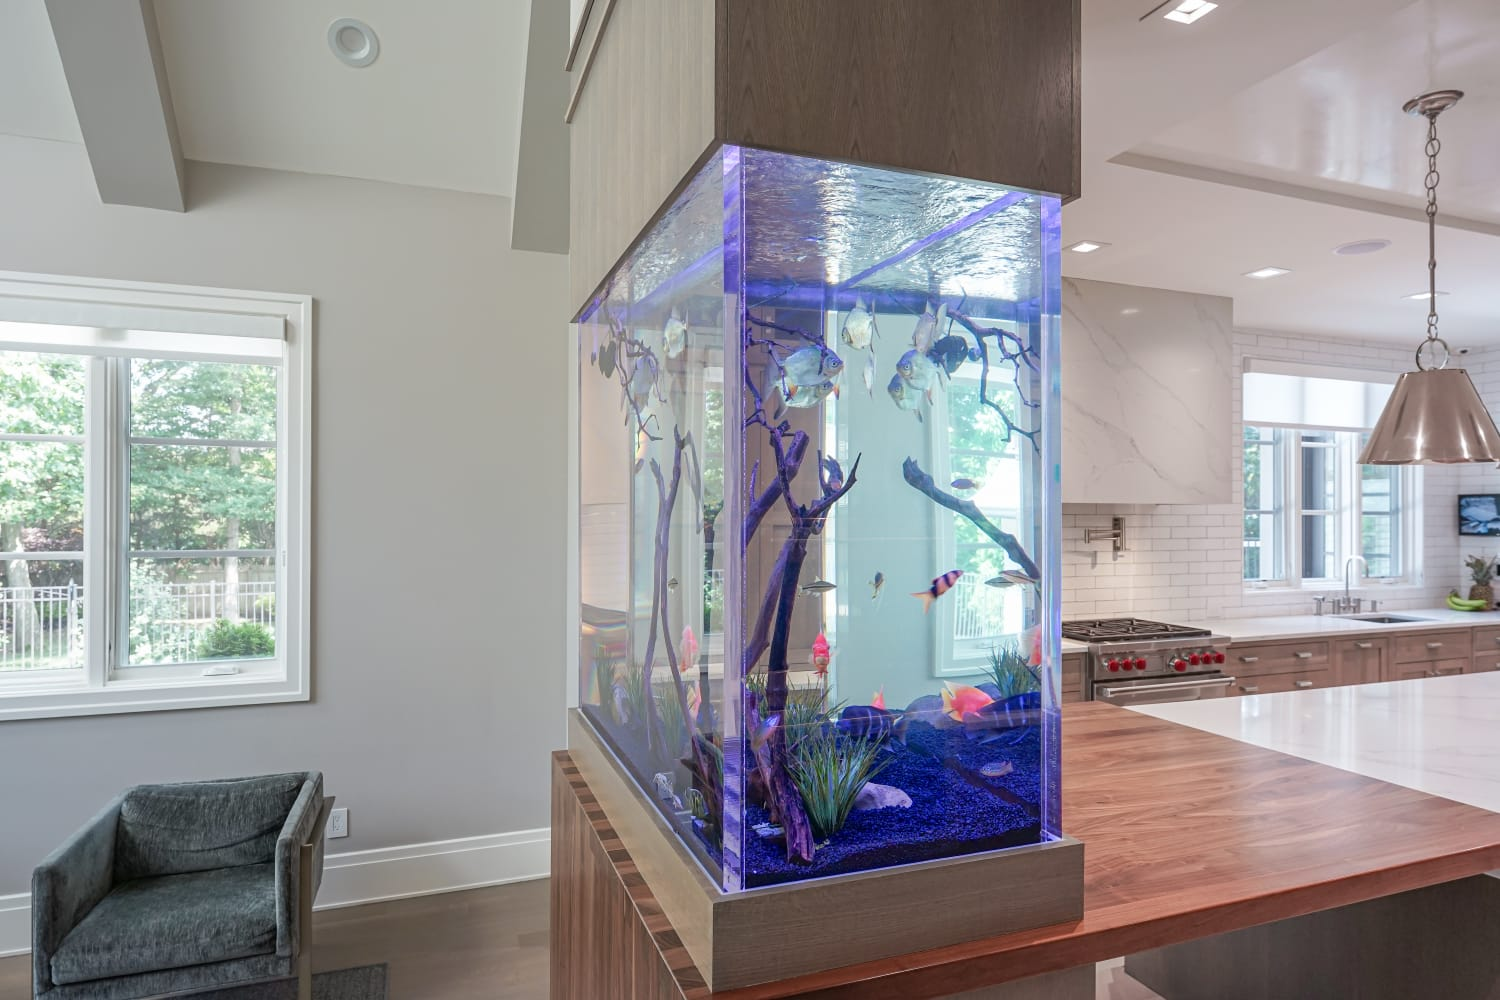 Kitchen island fish tank viewed from side